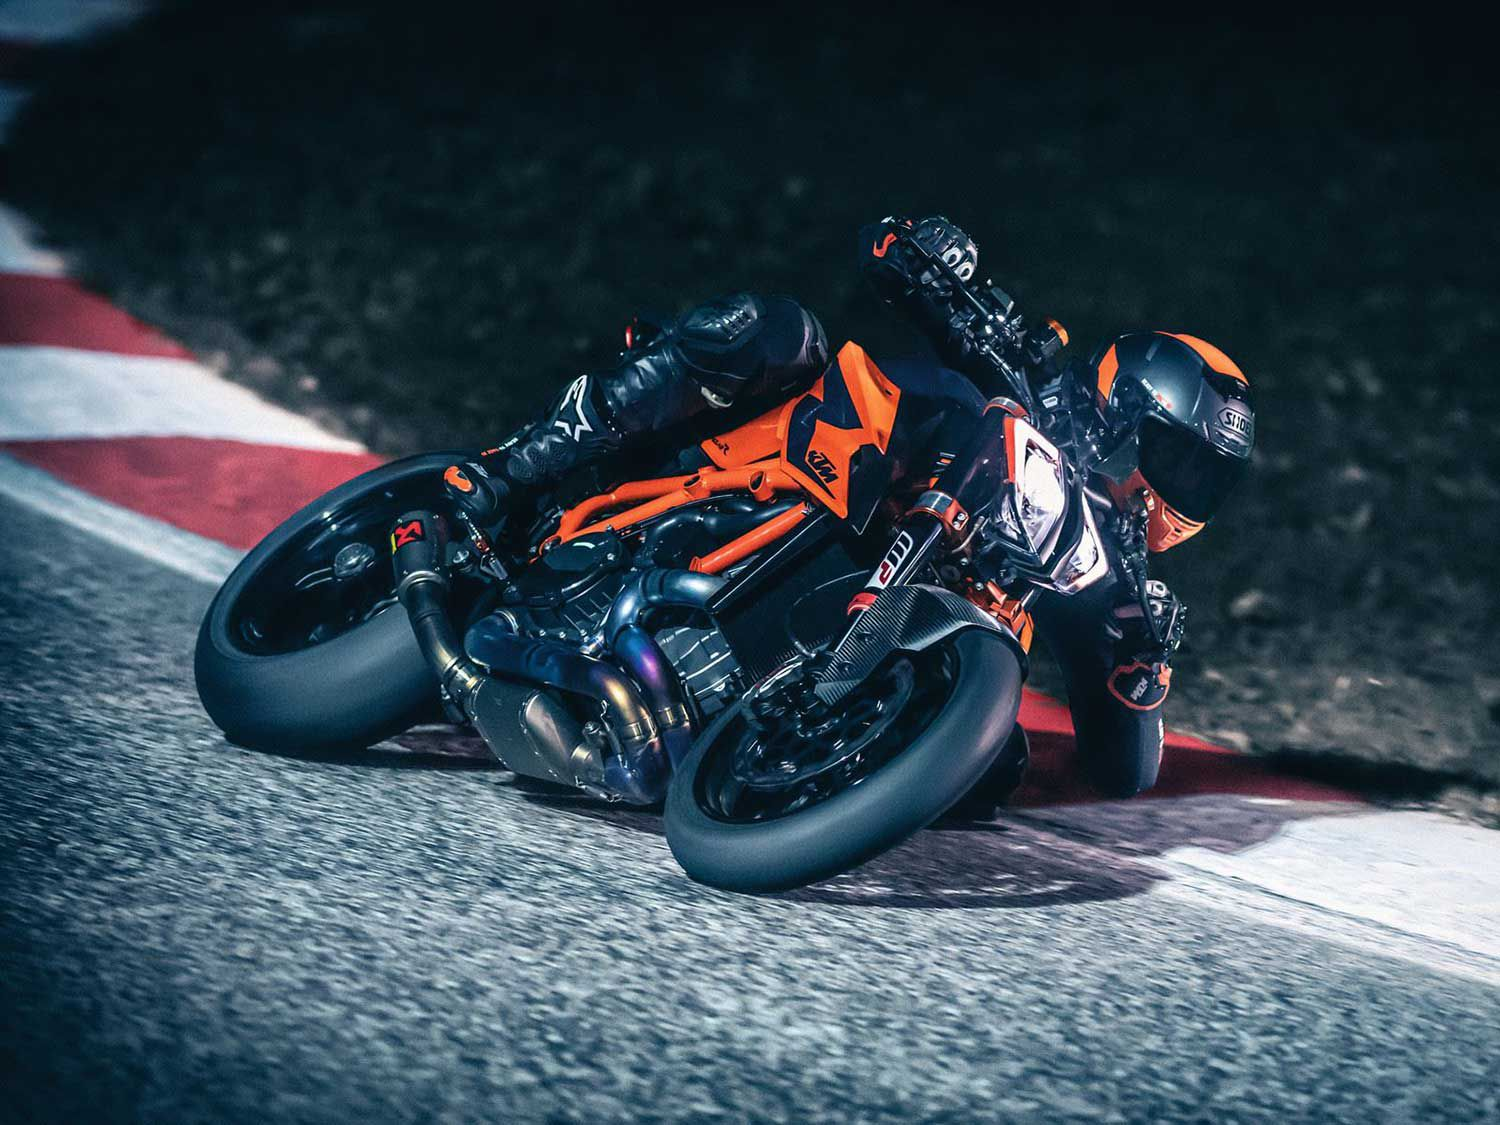 Considering power and price, a 1290 Super Duke is more bike than a new rider would ever need. But the sophisticated suite of rider aides could be a boon in a tricky situation.